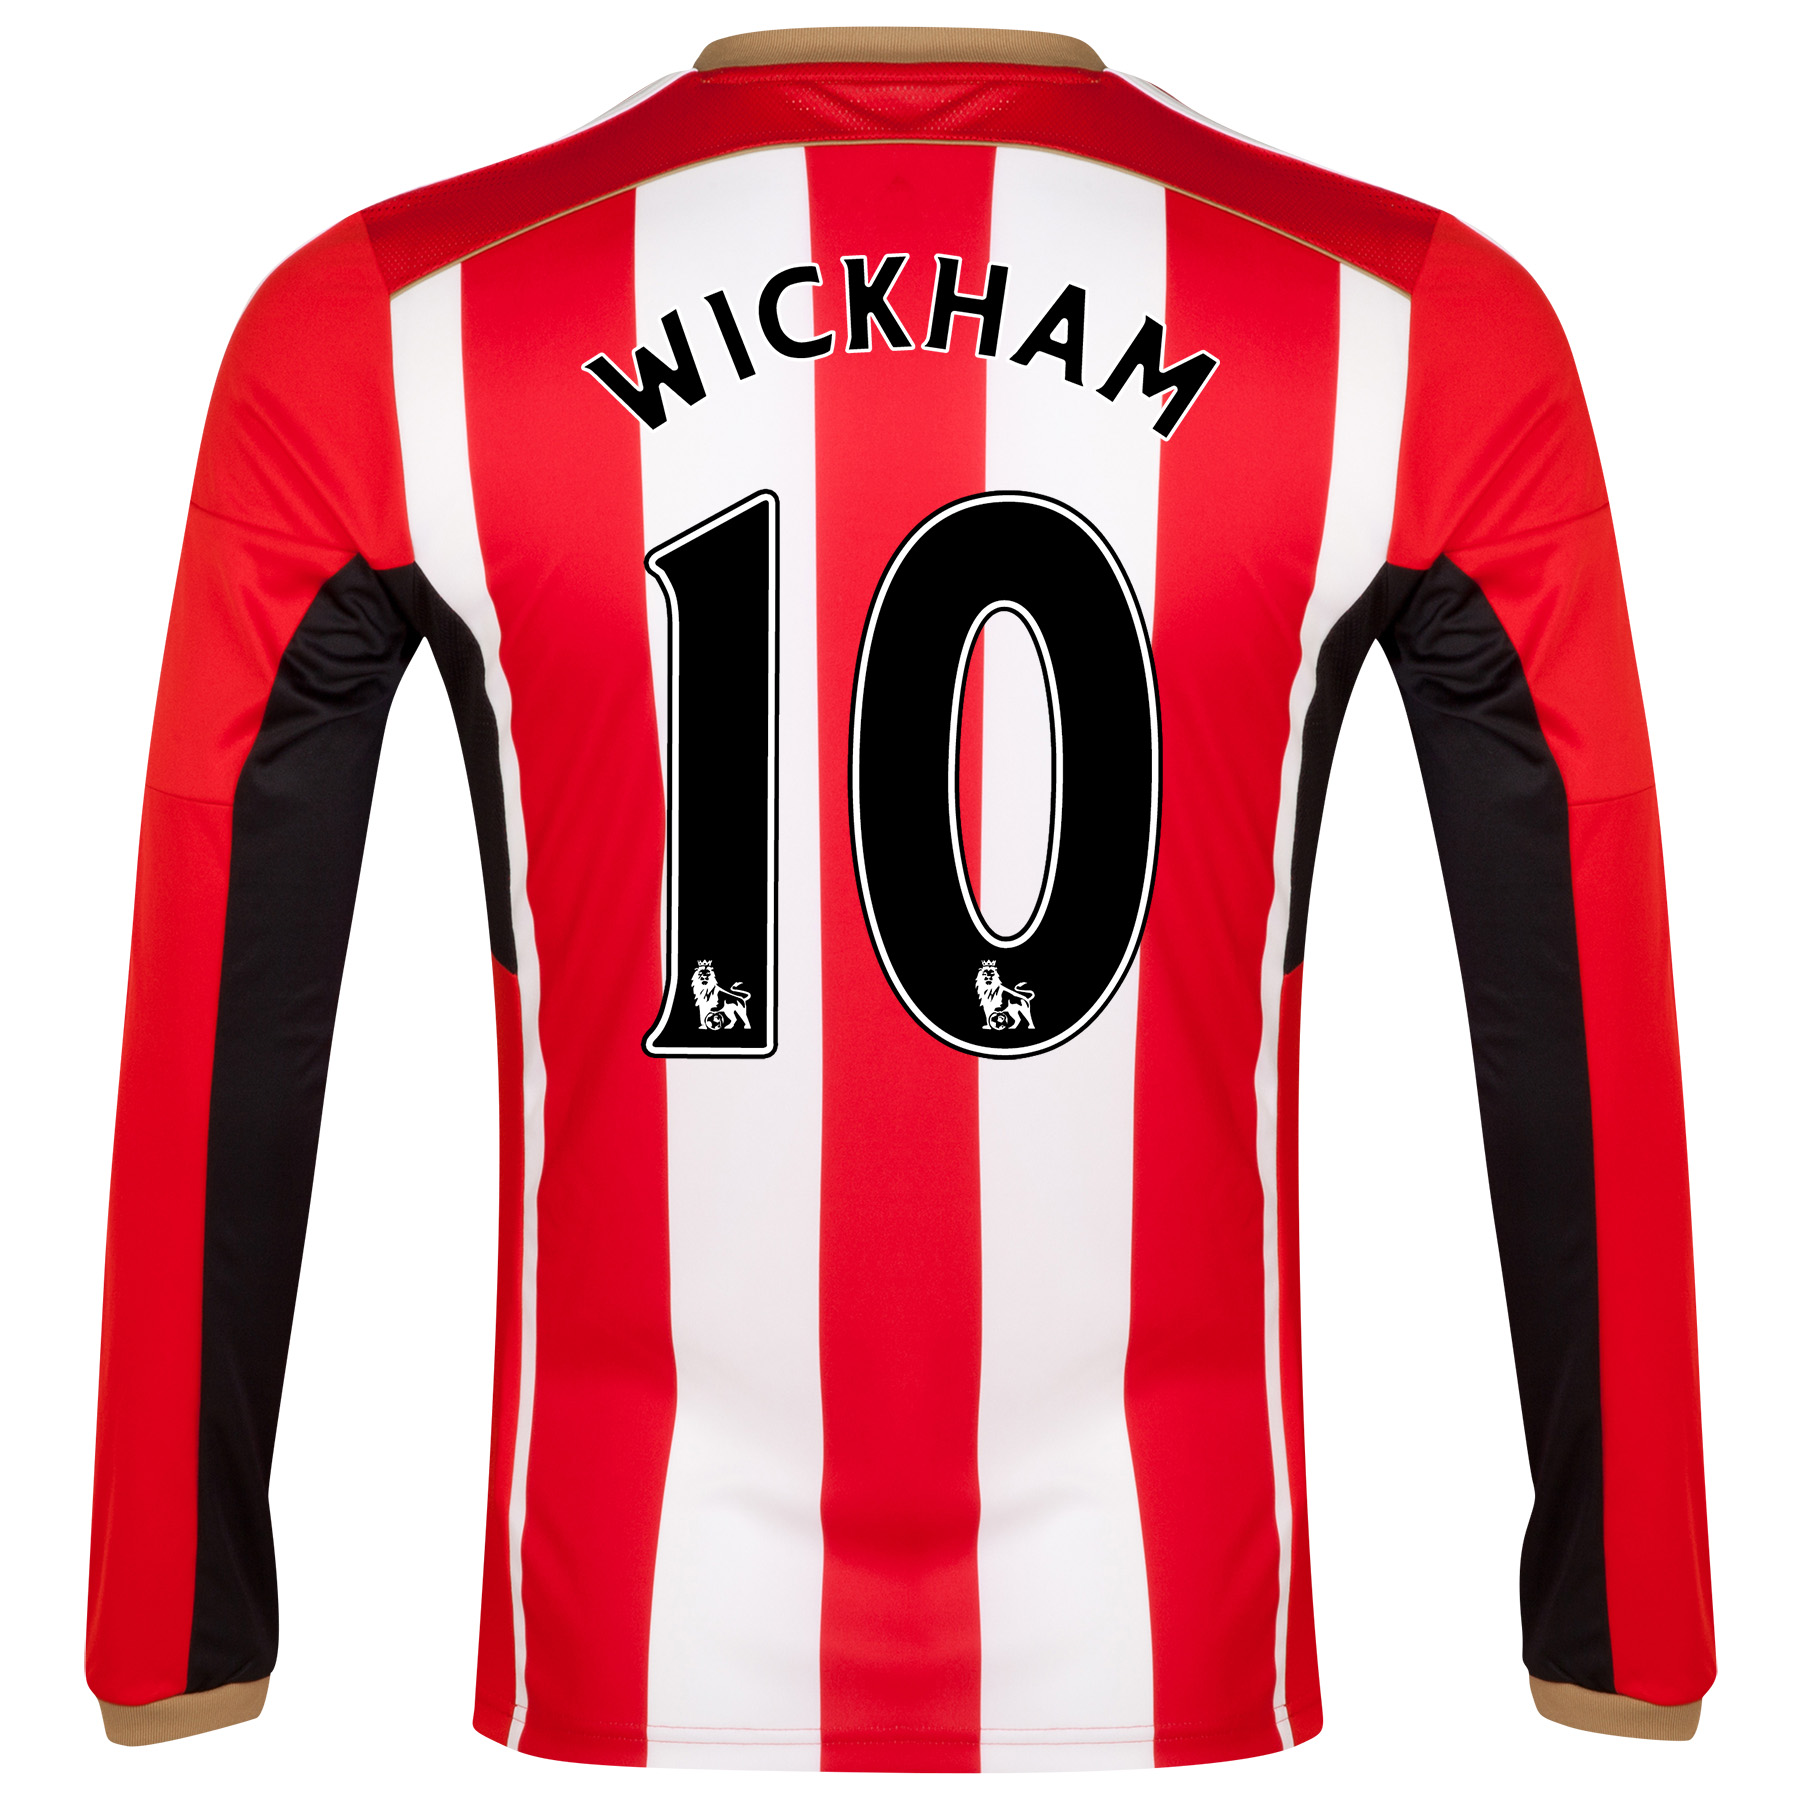 Sunderland Home Shirt 2014/15 - Long Sleeved Red with Wickham 10 printing